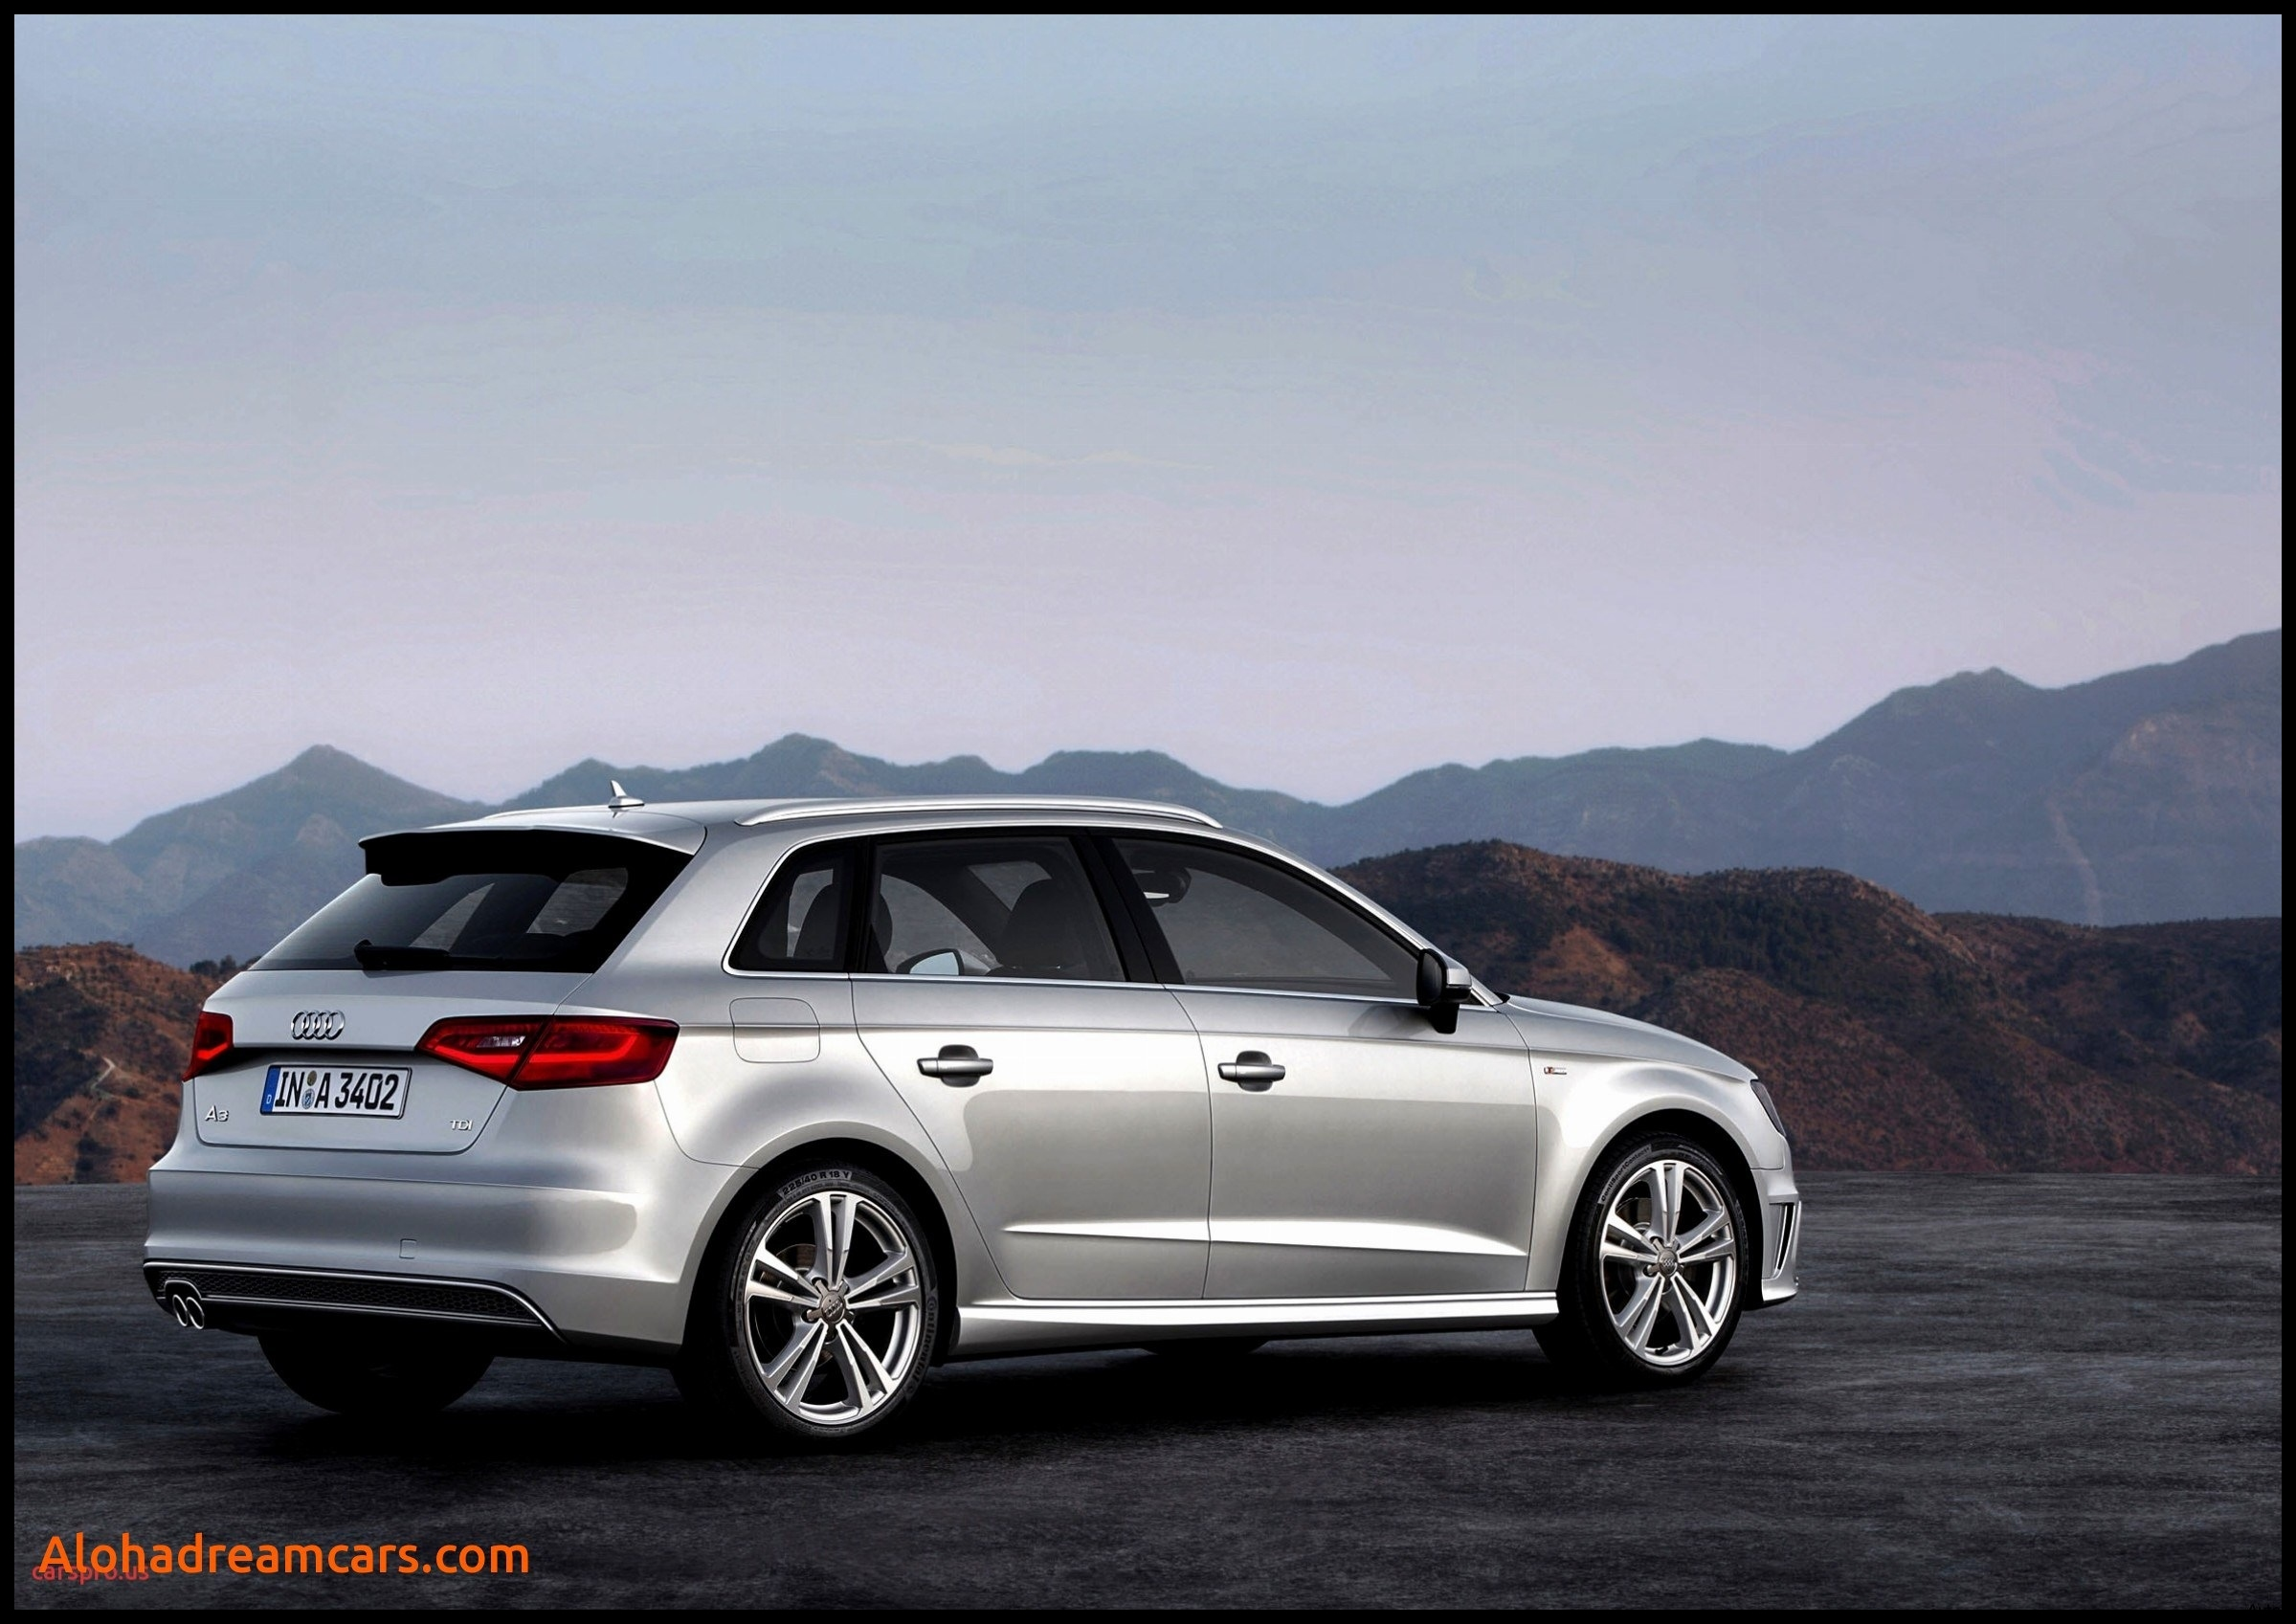 Download Lovely Price A3 Audi with original resolution 2399x1697 px size 591 KB Here